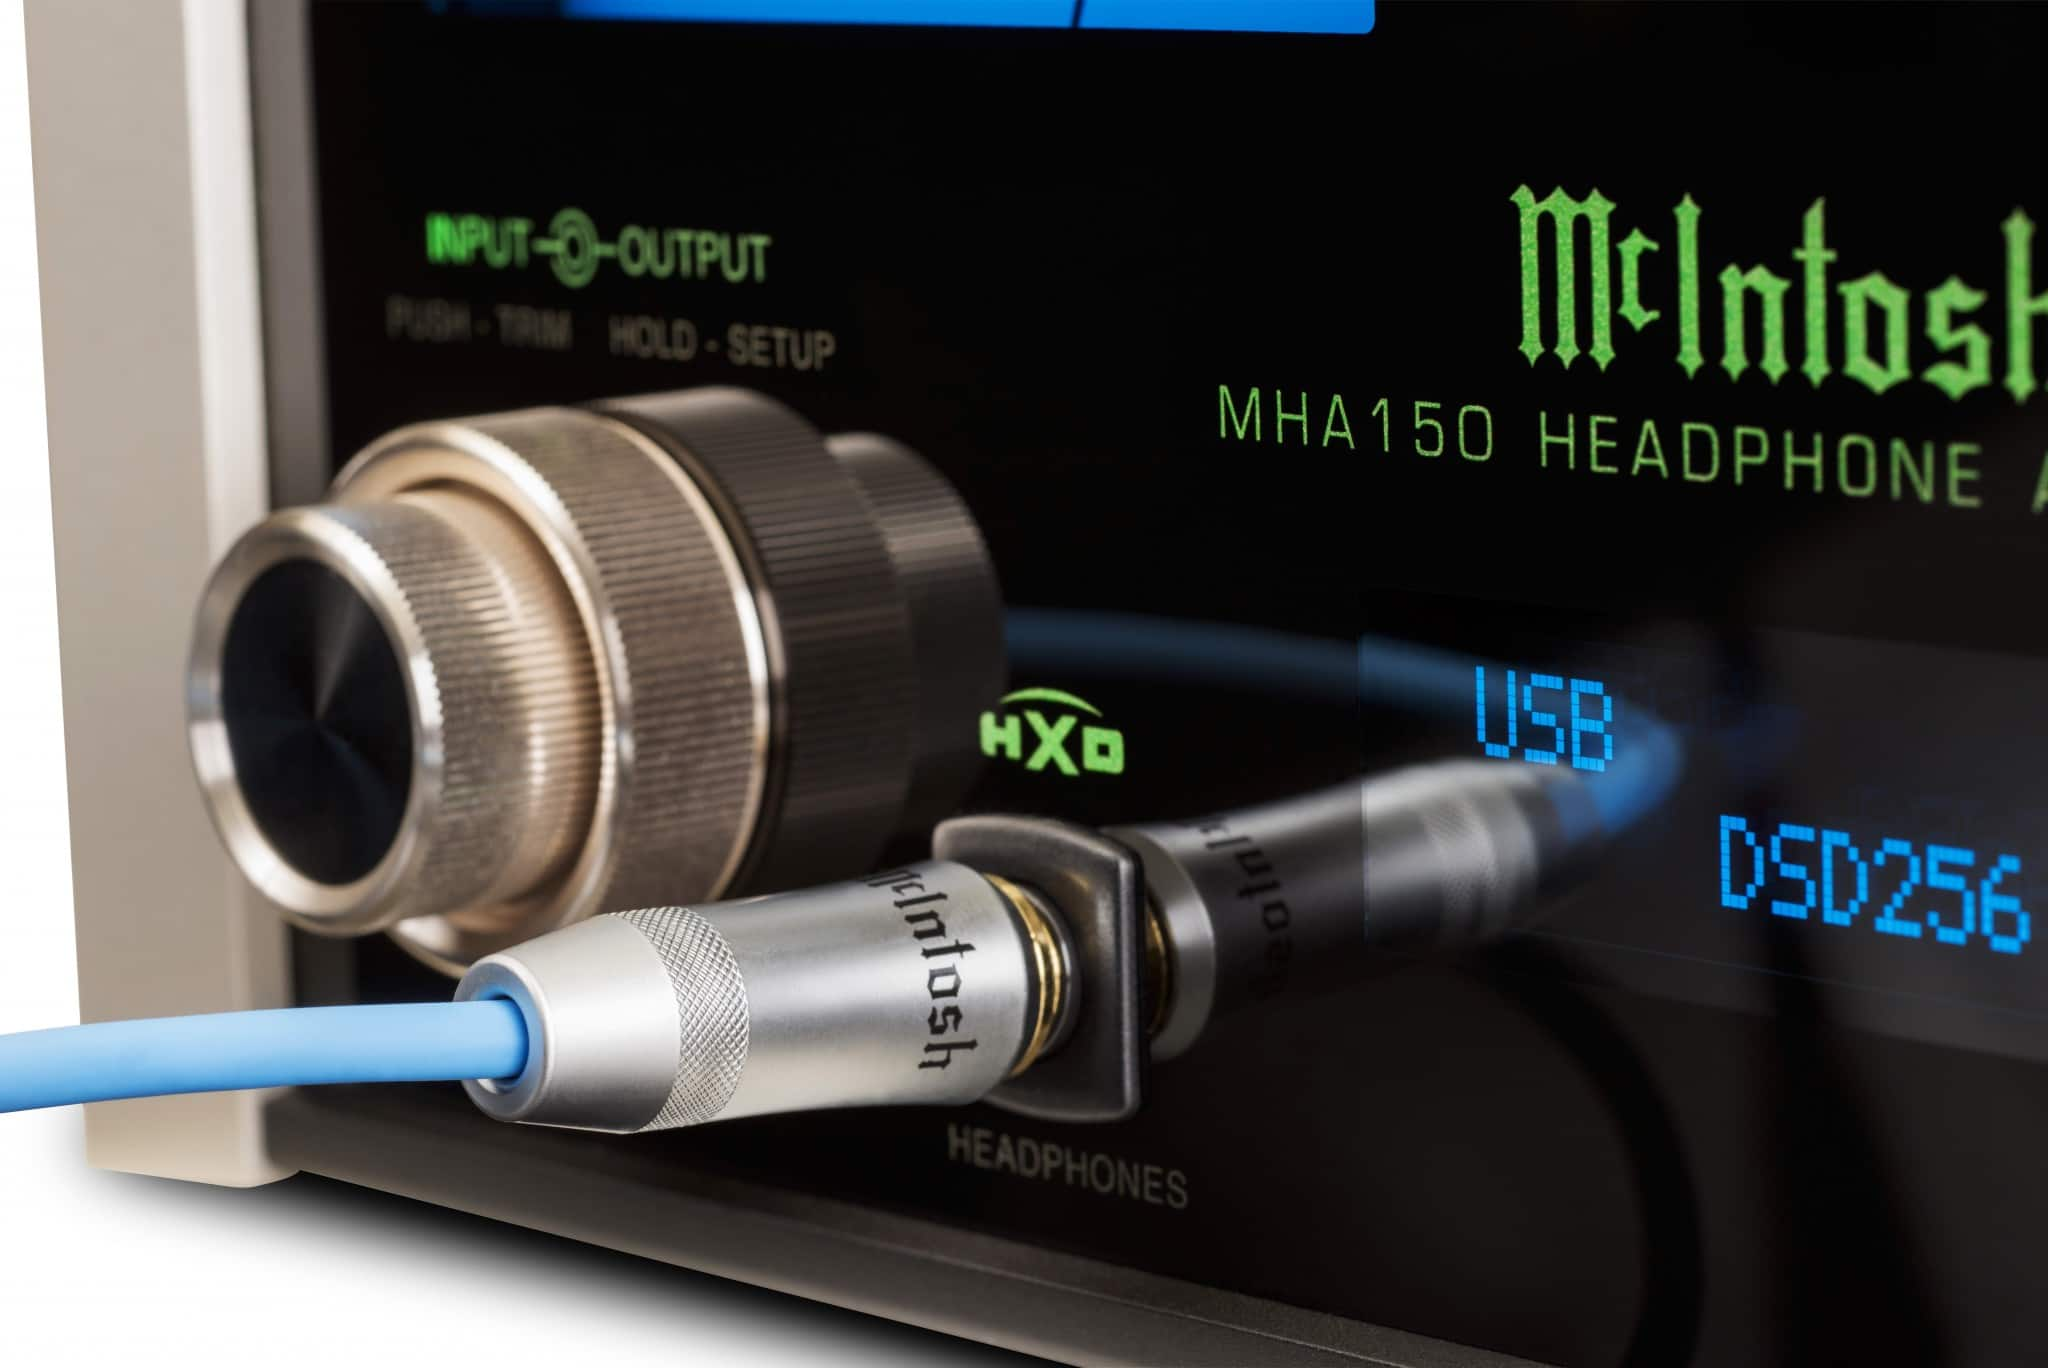 mha150-headphone-jack-close-up-hi-res